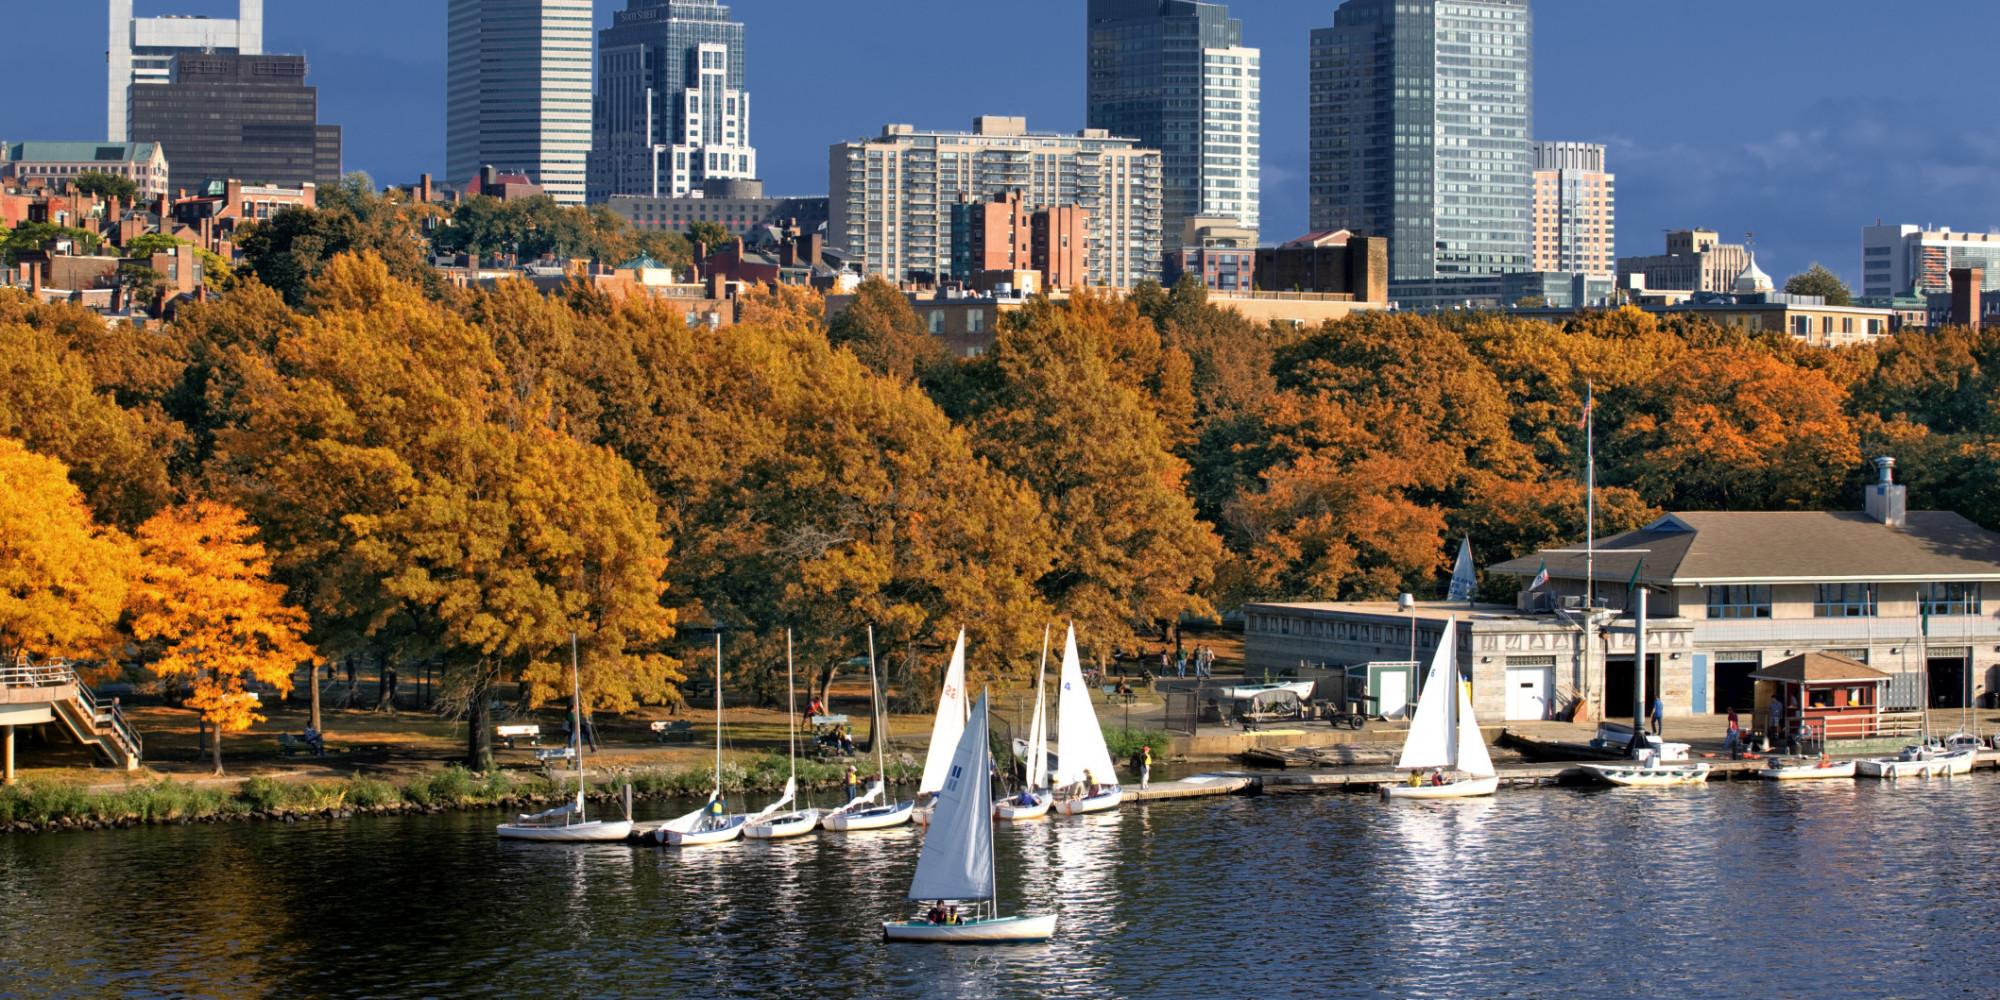 Rustic Fall Wallpaper Explore New England The Best Activities For Fall 2014